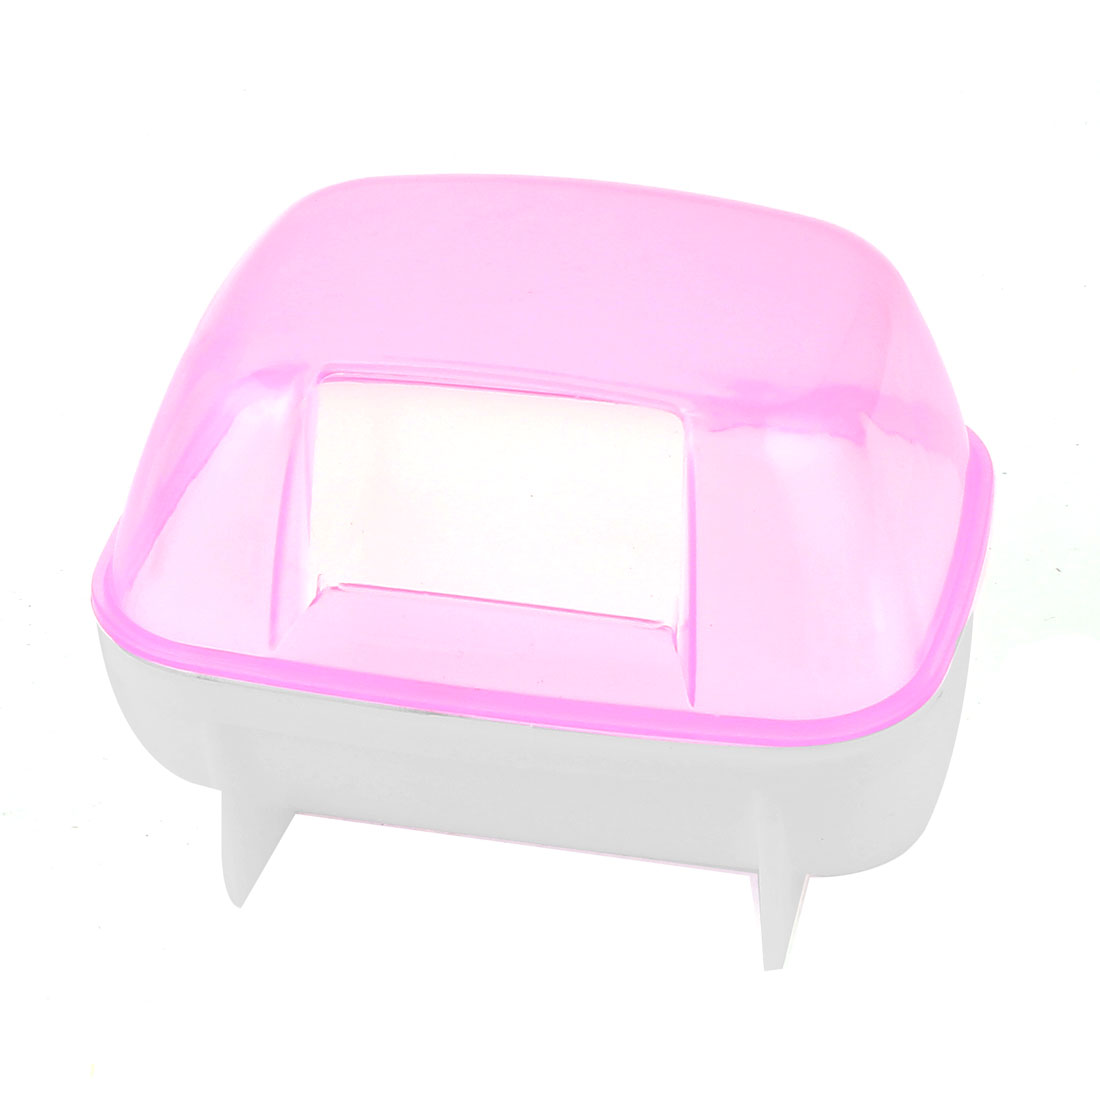 Plastic Detachable Pet Gerbil Hamster House Cage Playing Habitat Pink White